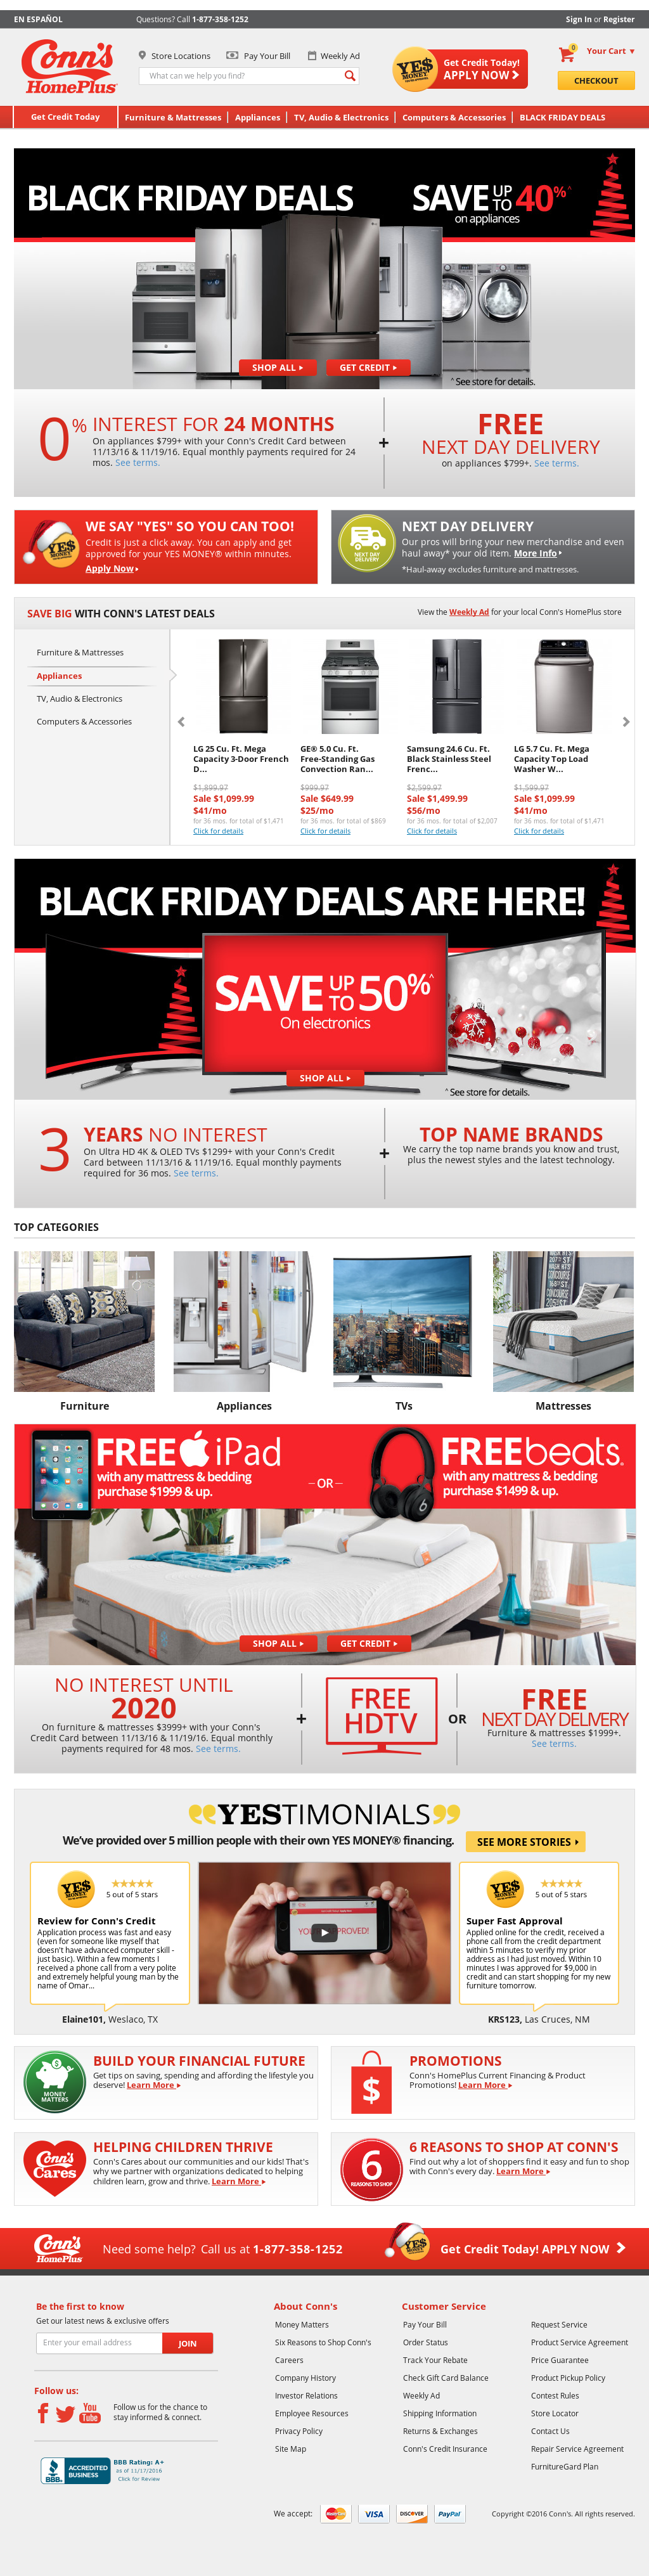 credit ceo inc naming of consumer electronics area specialty store retailer adds mattresses news conn jobs after home appliances years celebrated furniture article s provider conns in cupboard beaumont and new a